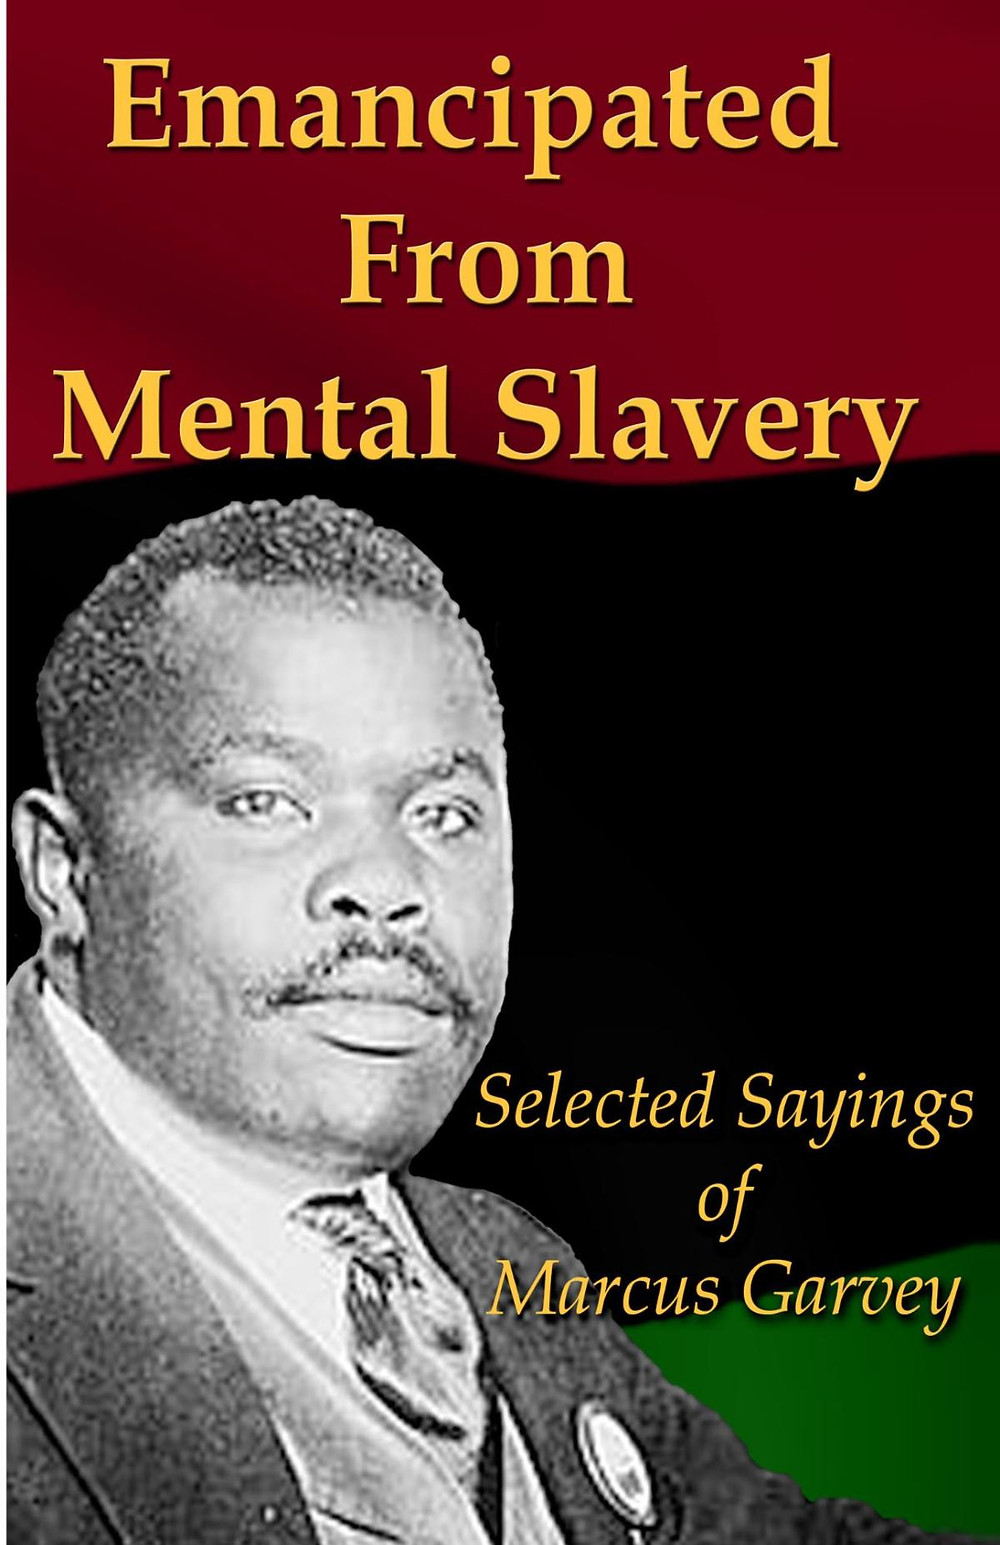 This image is claimed as fair dealing under Australian copyright law. It's the cover of a book of some of Marcus Garvey's sayings and free advertising for kindle and the like. Maybe we will send a copy to Pauline as a gift for her election success.